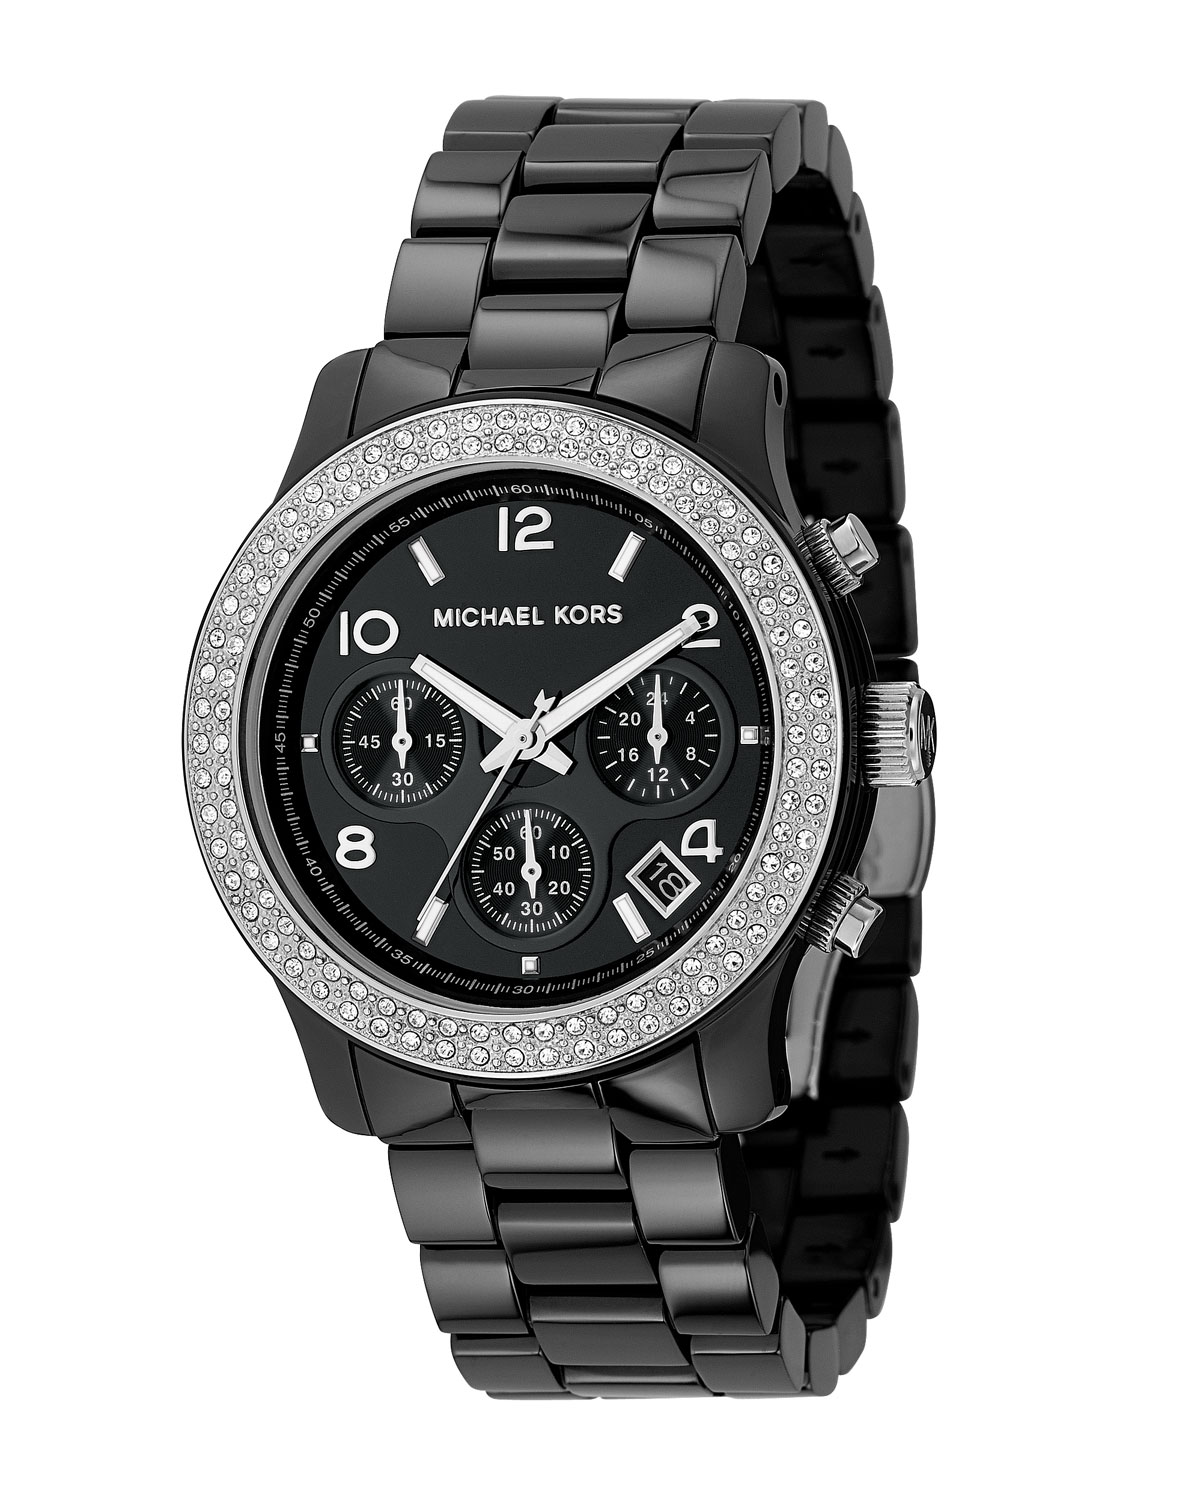 Michael Kors Mid-Sized Ceramic Watch with Glitz in Black ... Michael Kors Watches Black Ceramic